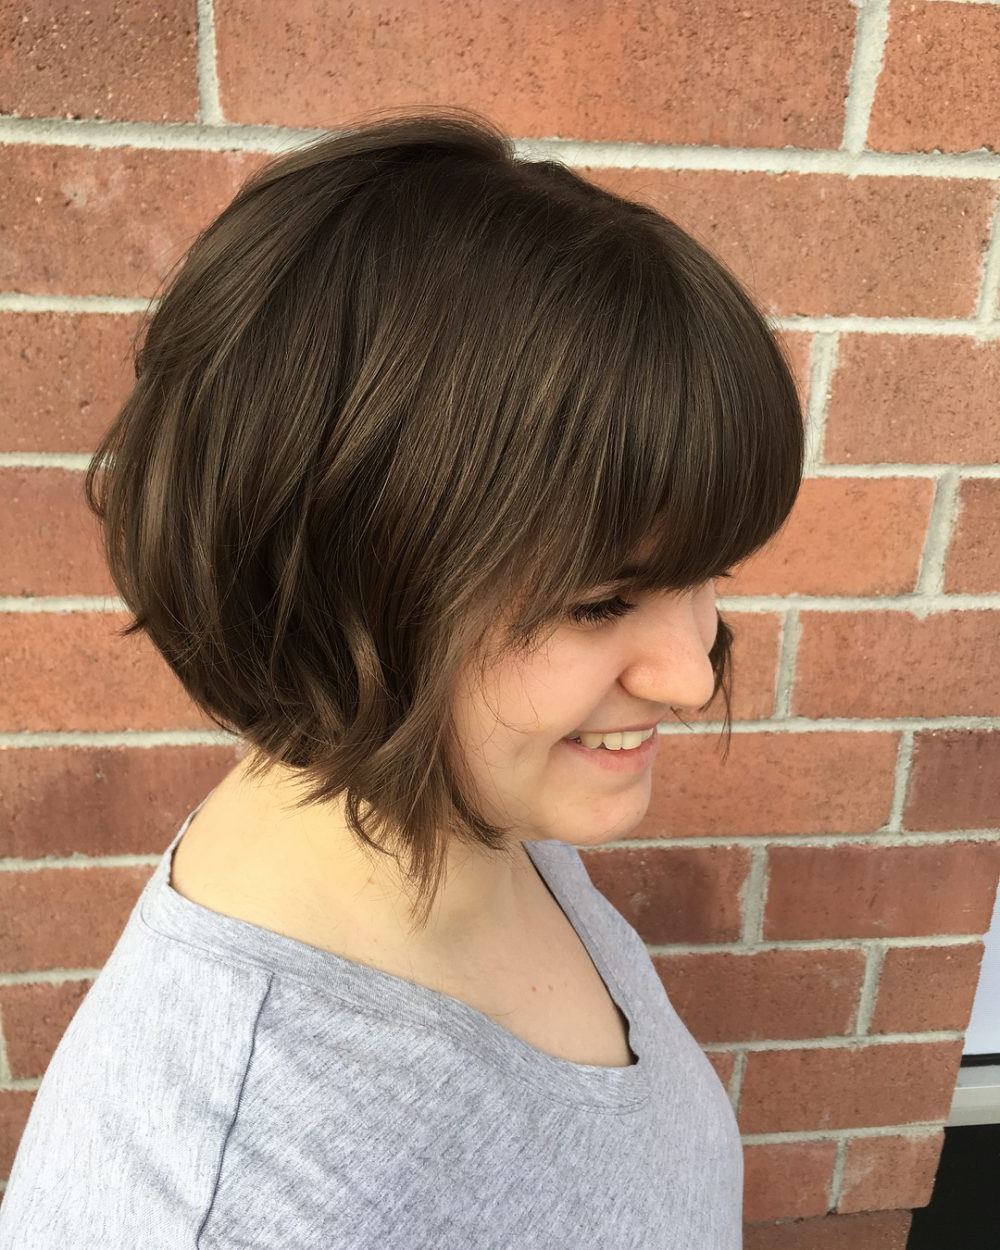 34 Greatest Short Haircuts And Hairstyles For Thick Hair For 2018 With Medium To Short Haircuts For Thick Hair (View 5 of 25)